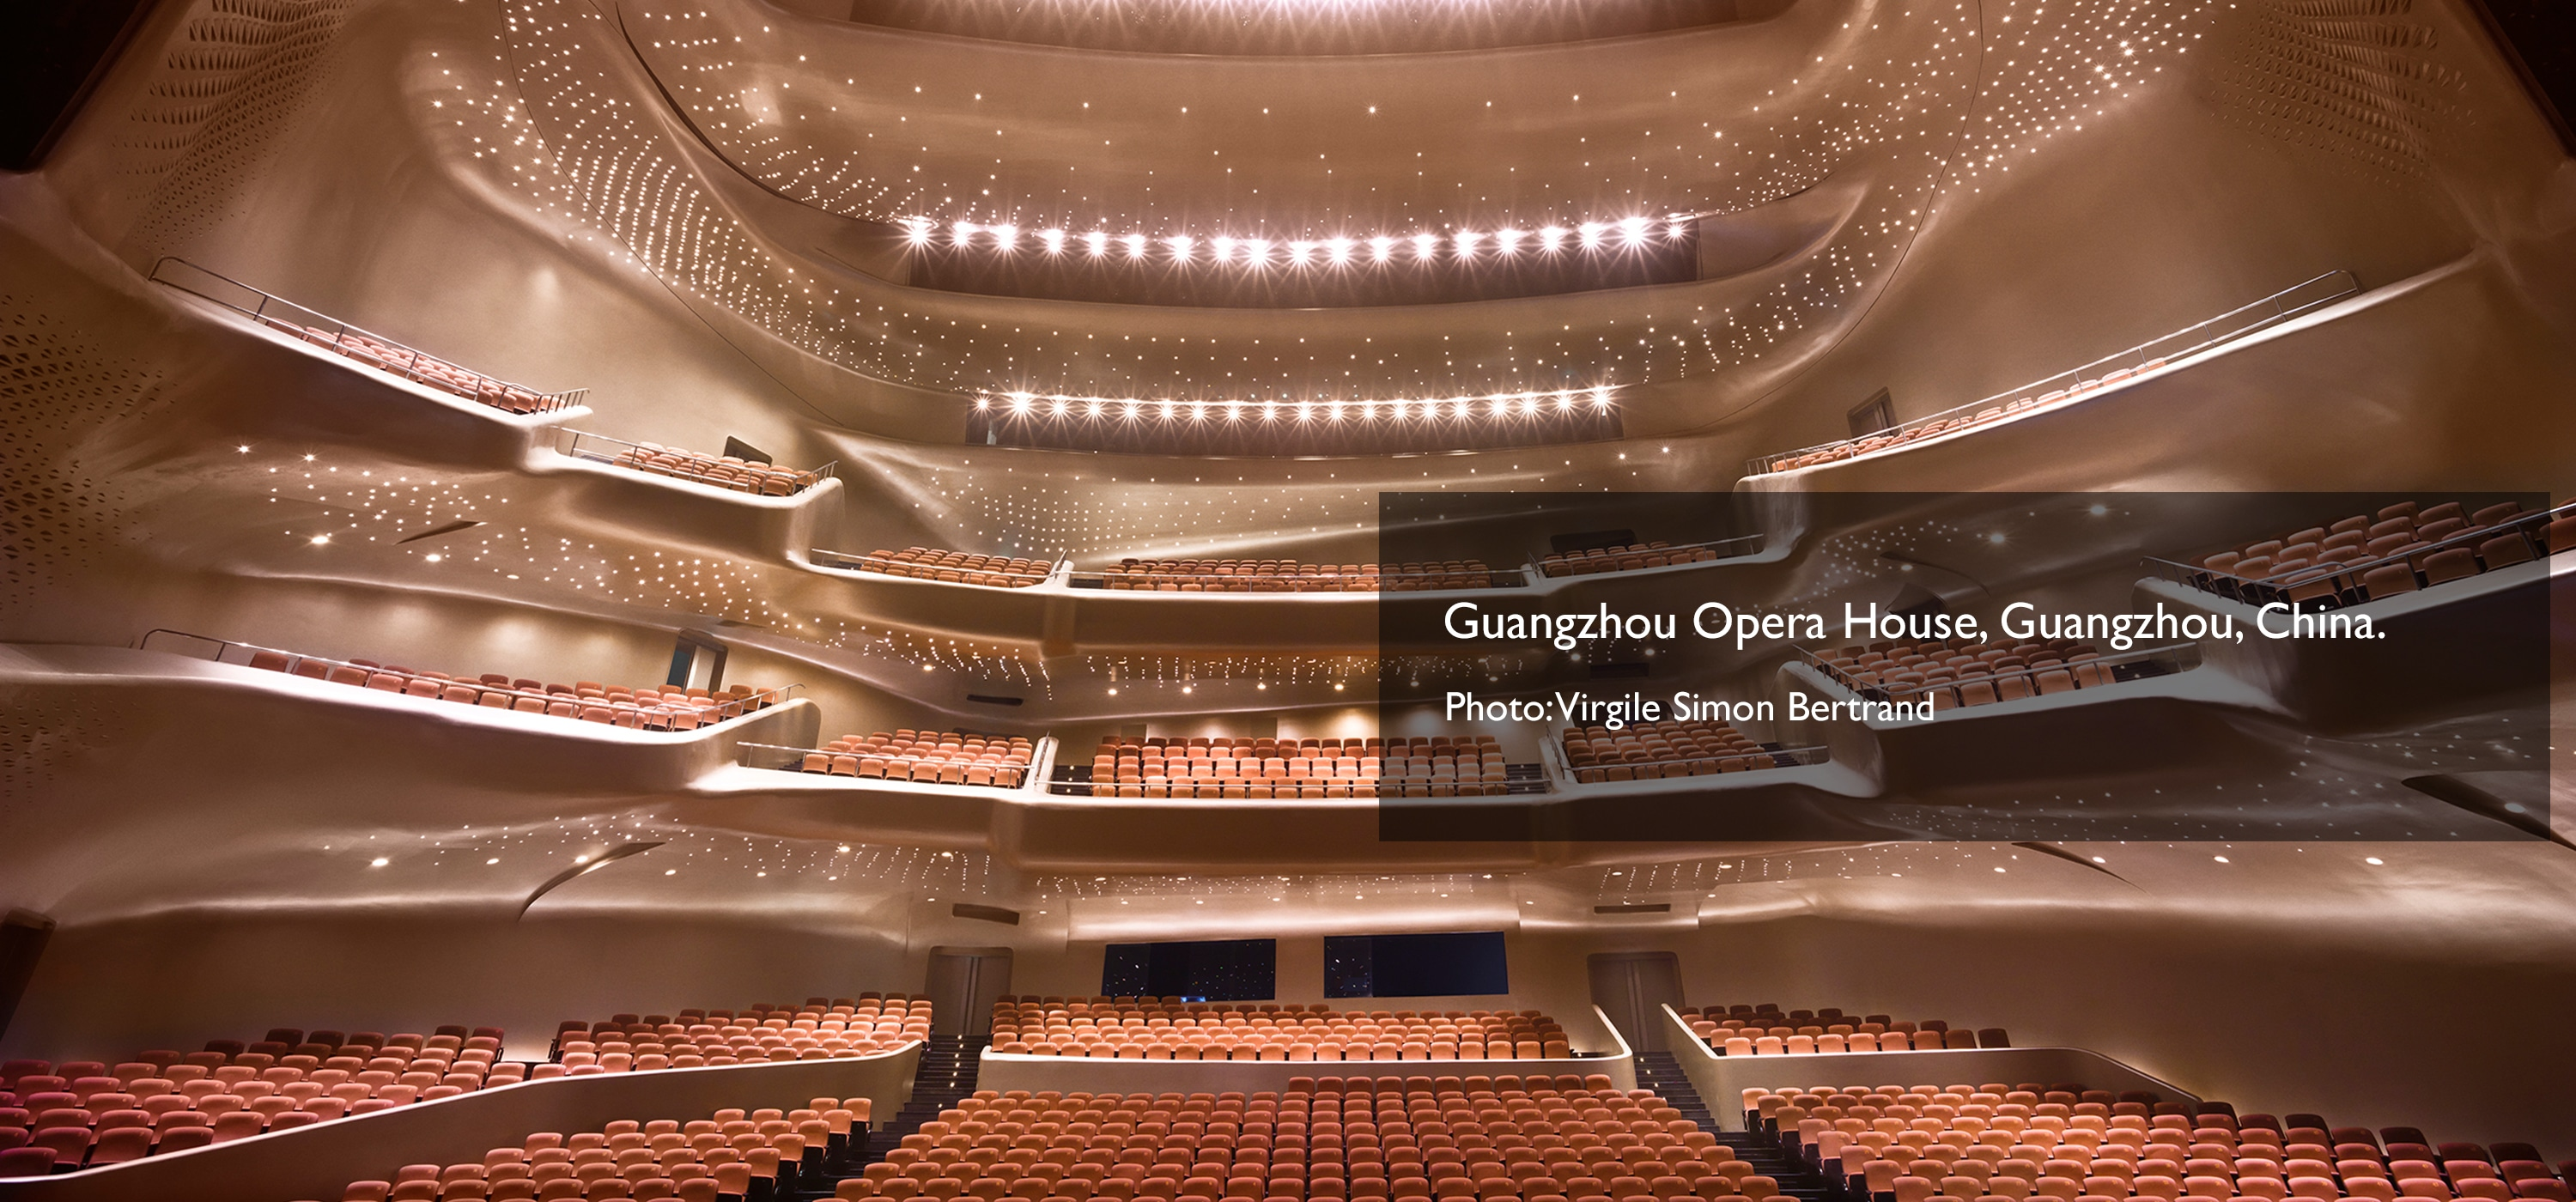 Guangzhou Opera House, Guangzhou, China. Photo: Virgile Simon Bertrand